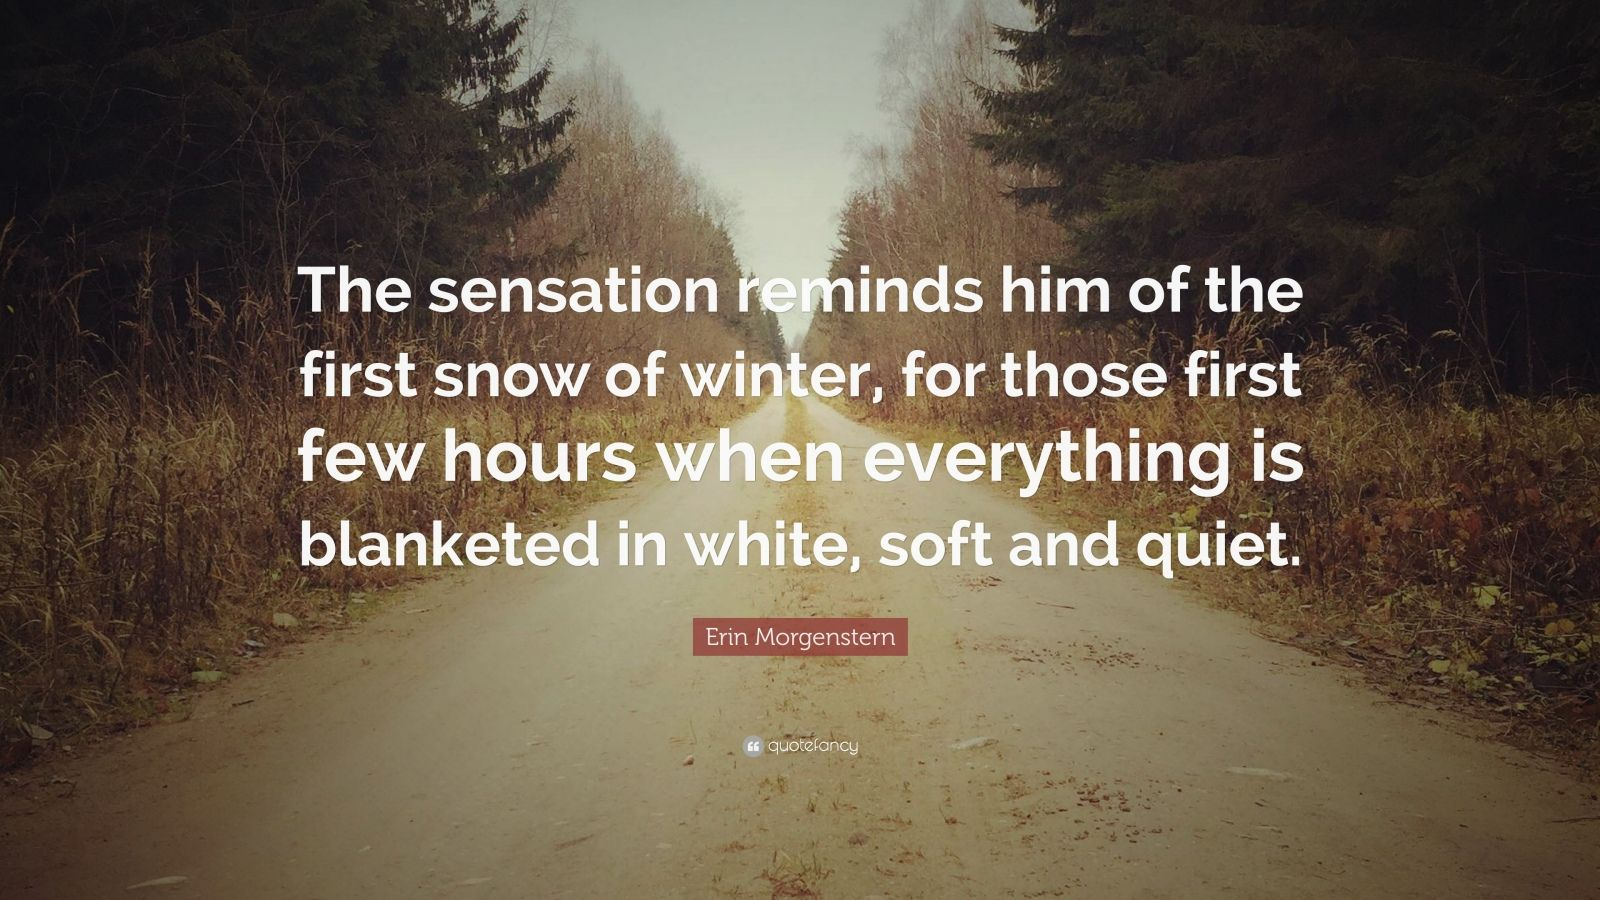 """Erin Morgenstern Quote: """"The sensation reminds him of the first snow of winter, for those first few hours when everything is blanketed in white, soft and quiet."""""""